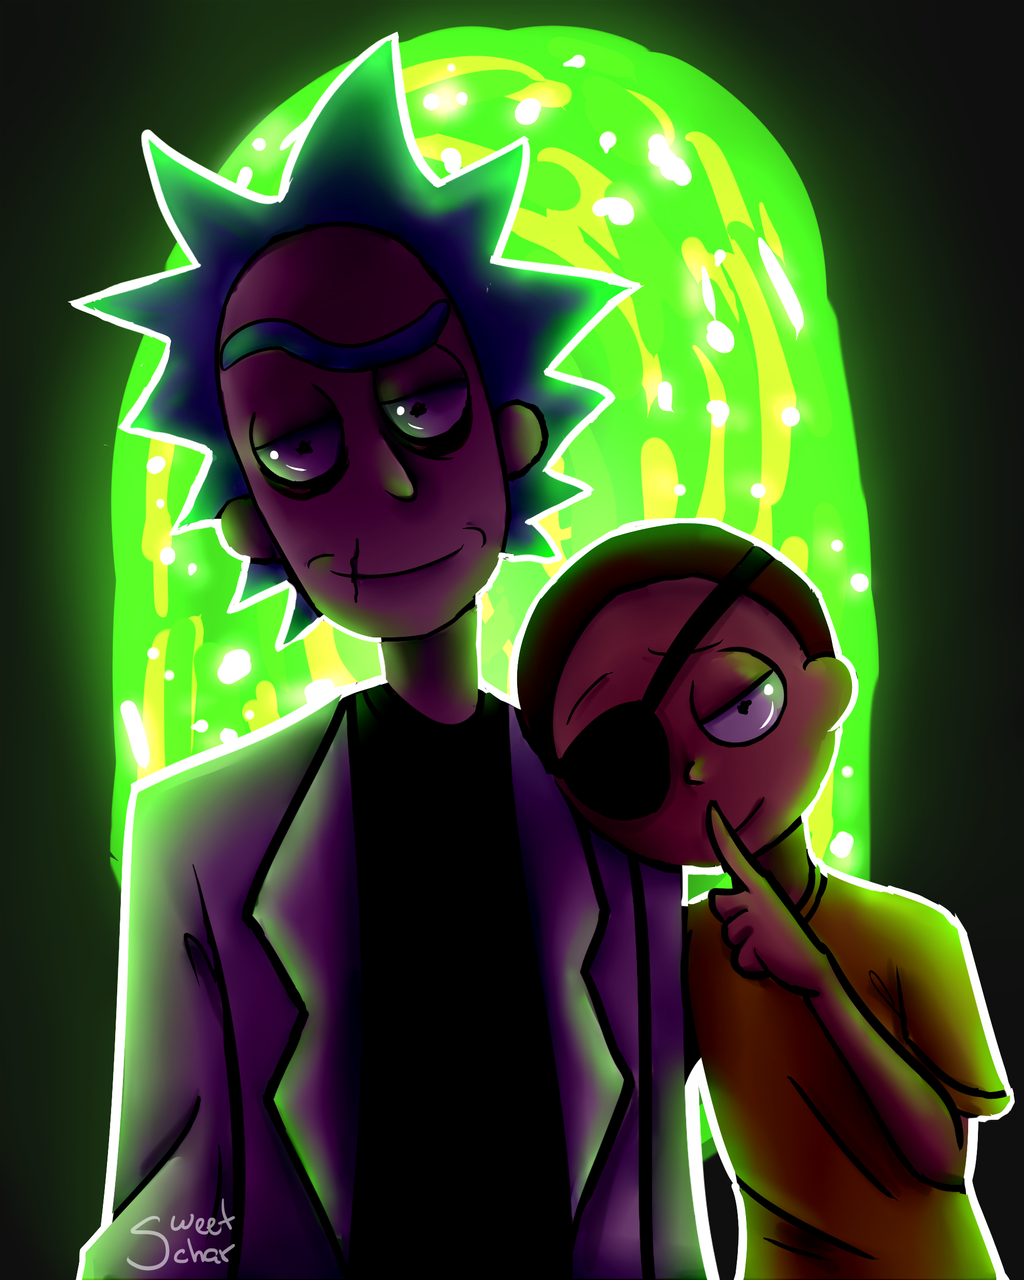 Evil Wallpapers: Evil Rick And Morty By GabDommie On DeviantArt